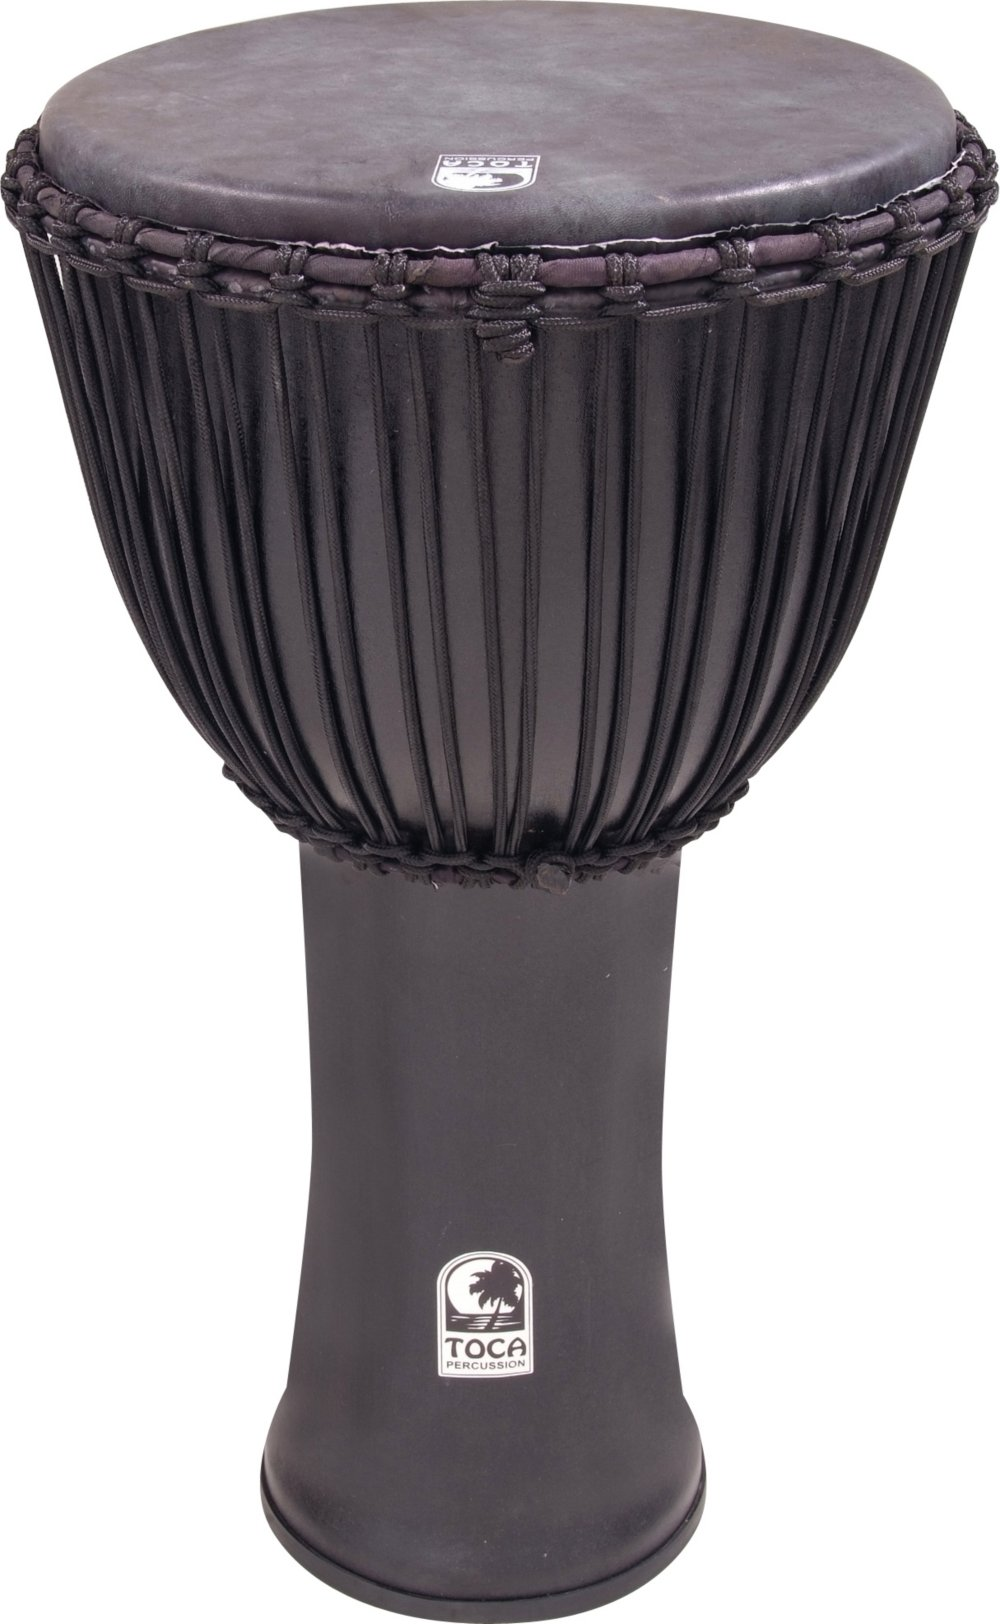 Toca Freestyle Canon Djembe 14 with Bag, Black Mamba by Toca (Image #1)